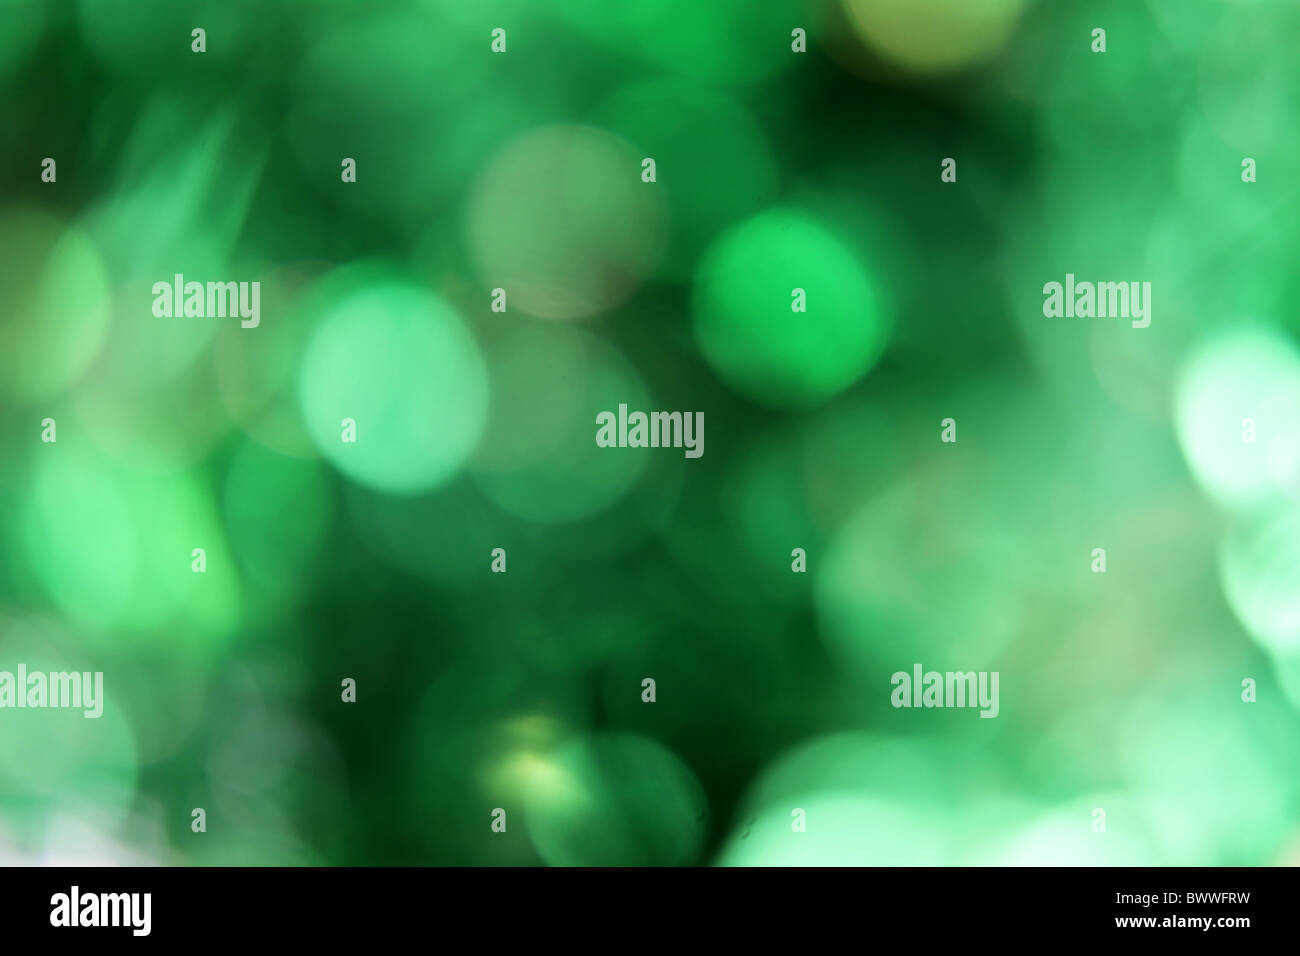 Green Blurred Background - Stock Image